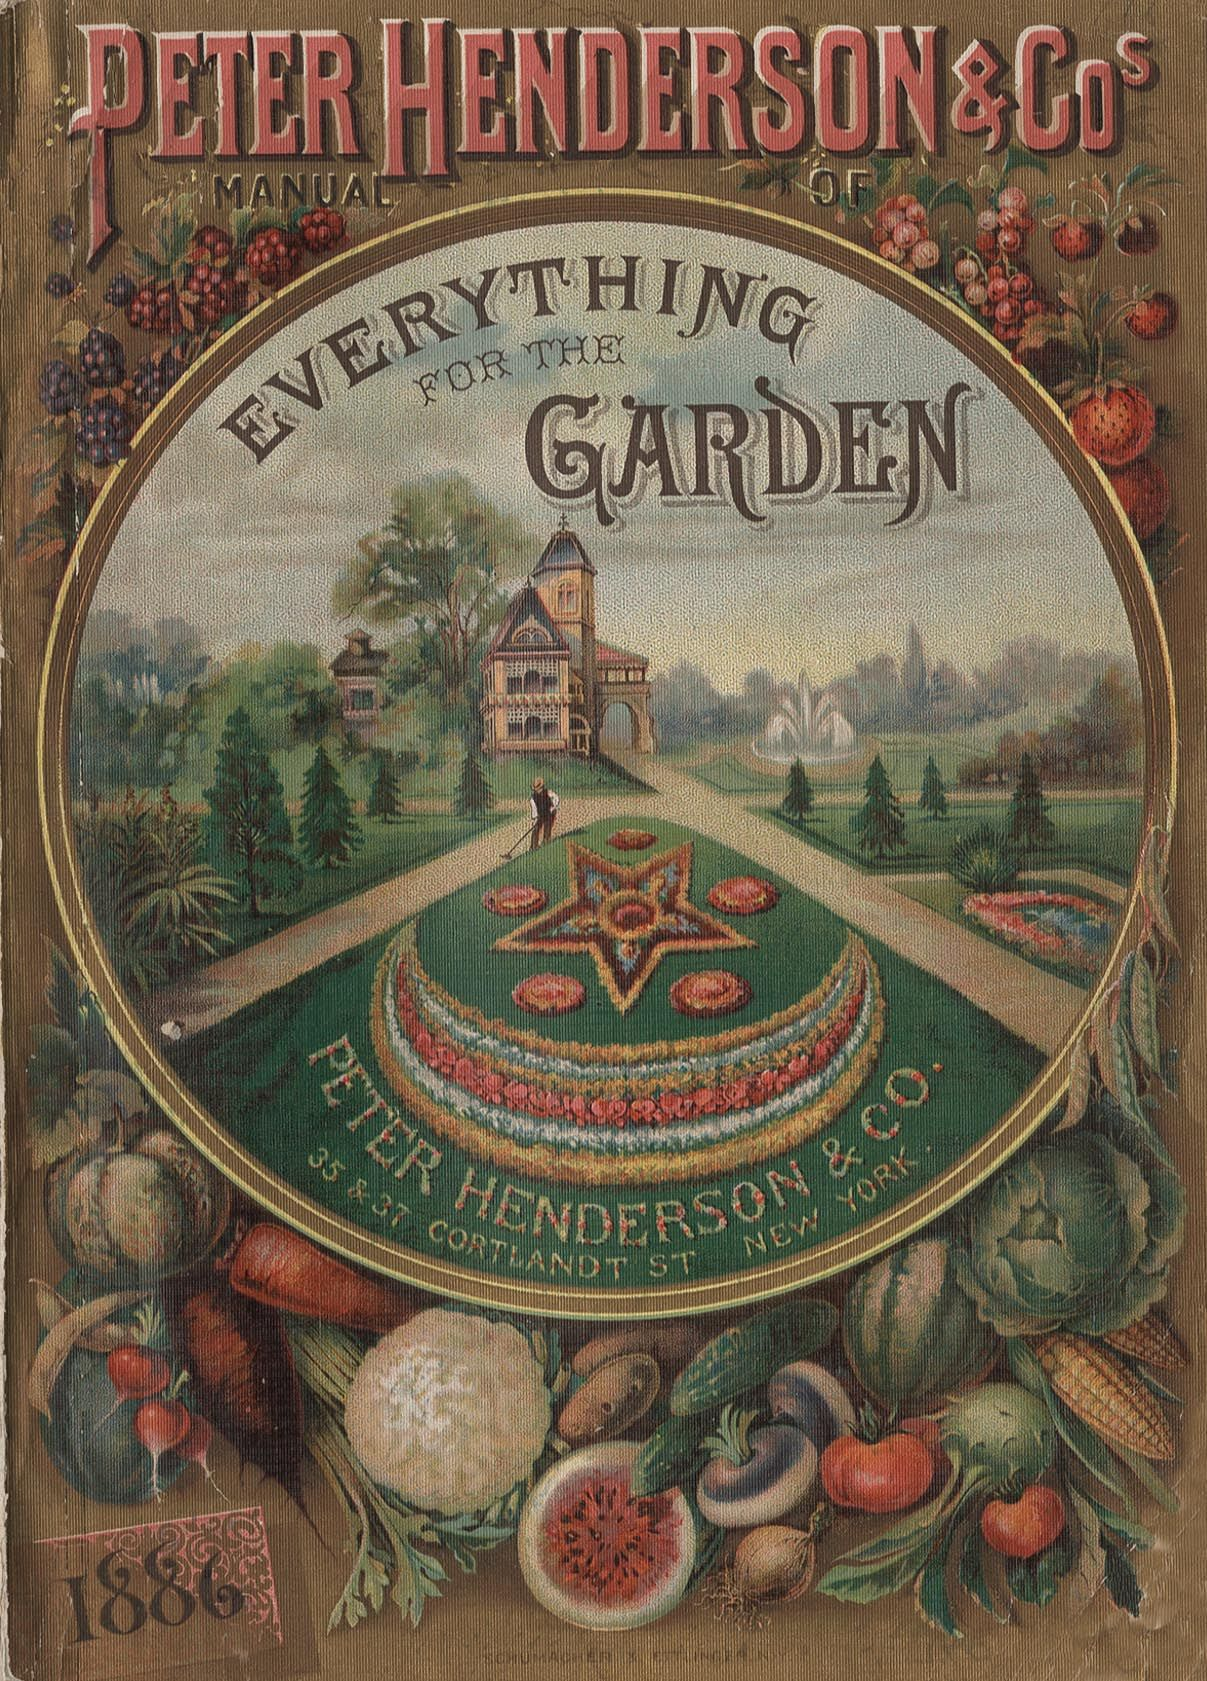 Bedding on the front cover of this Peter Henderson Company seed ...